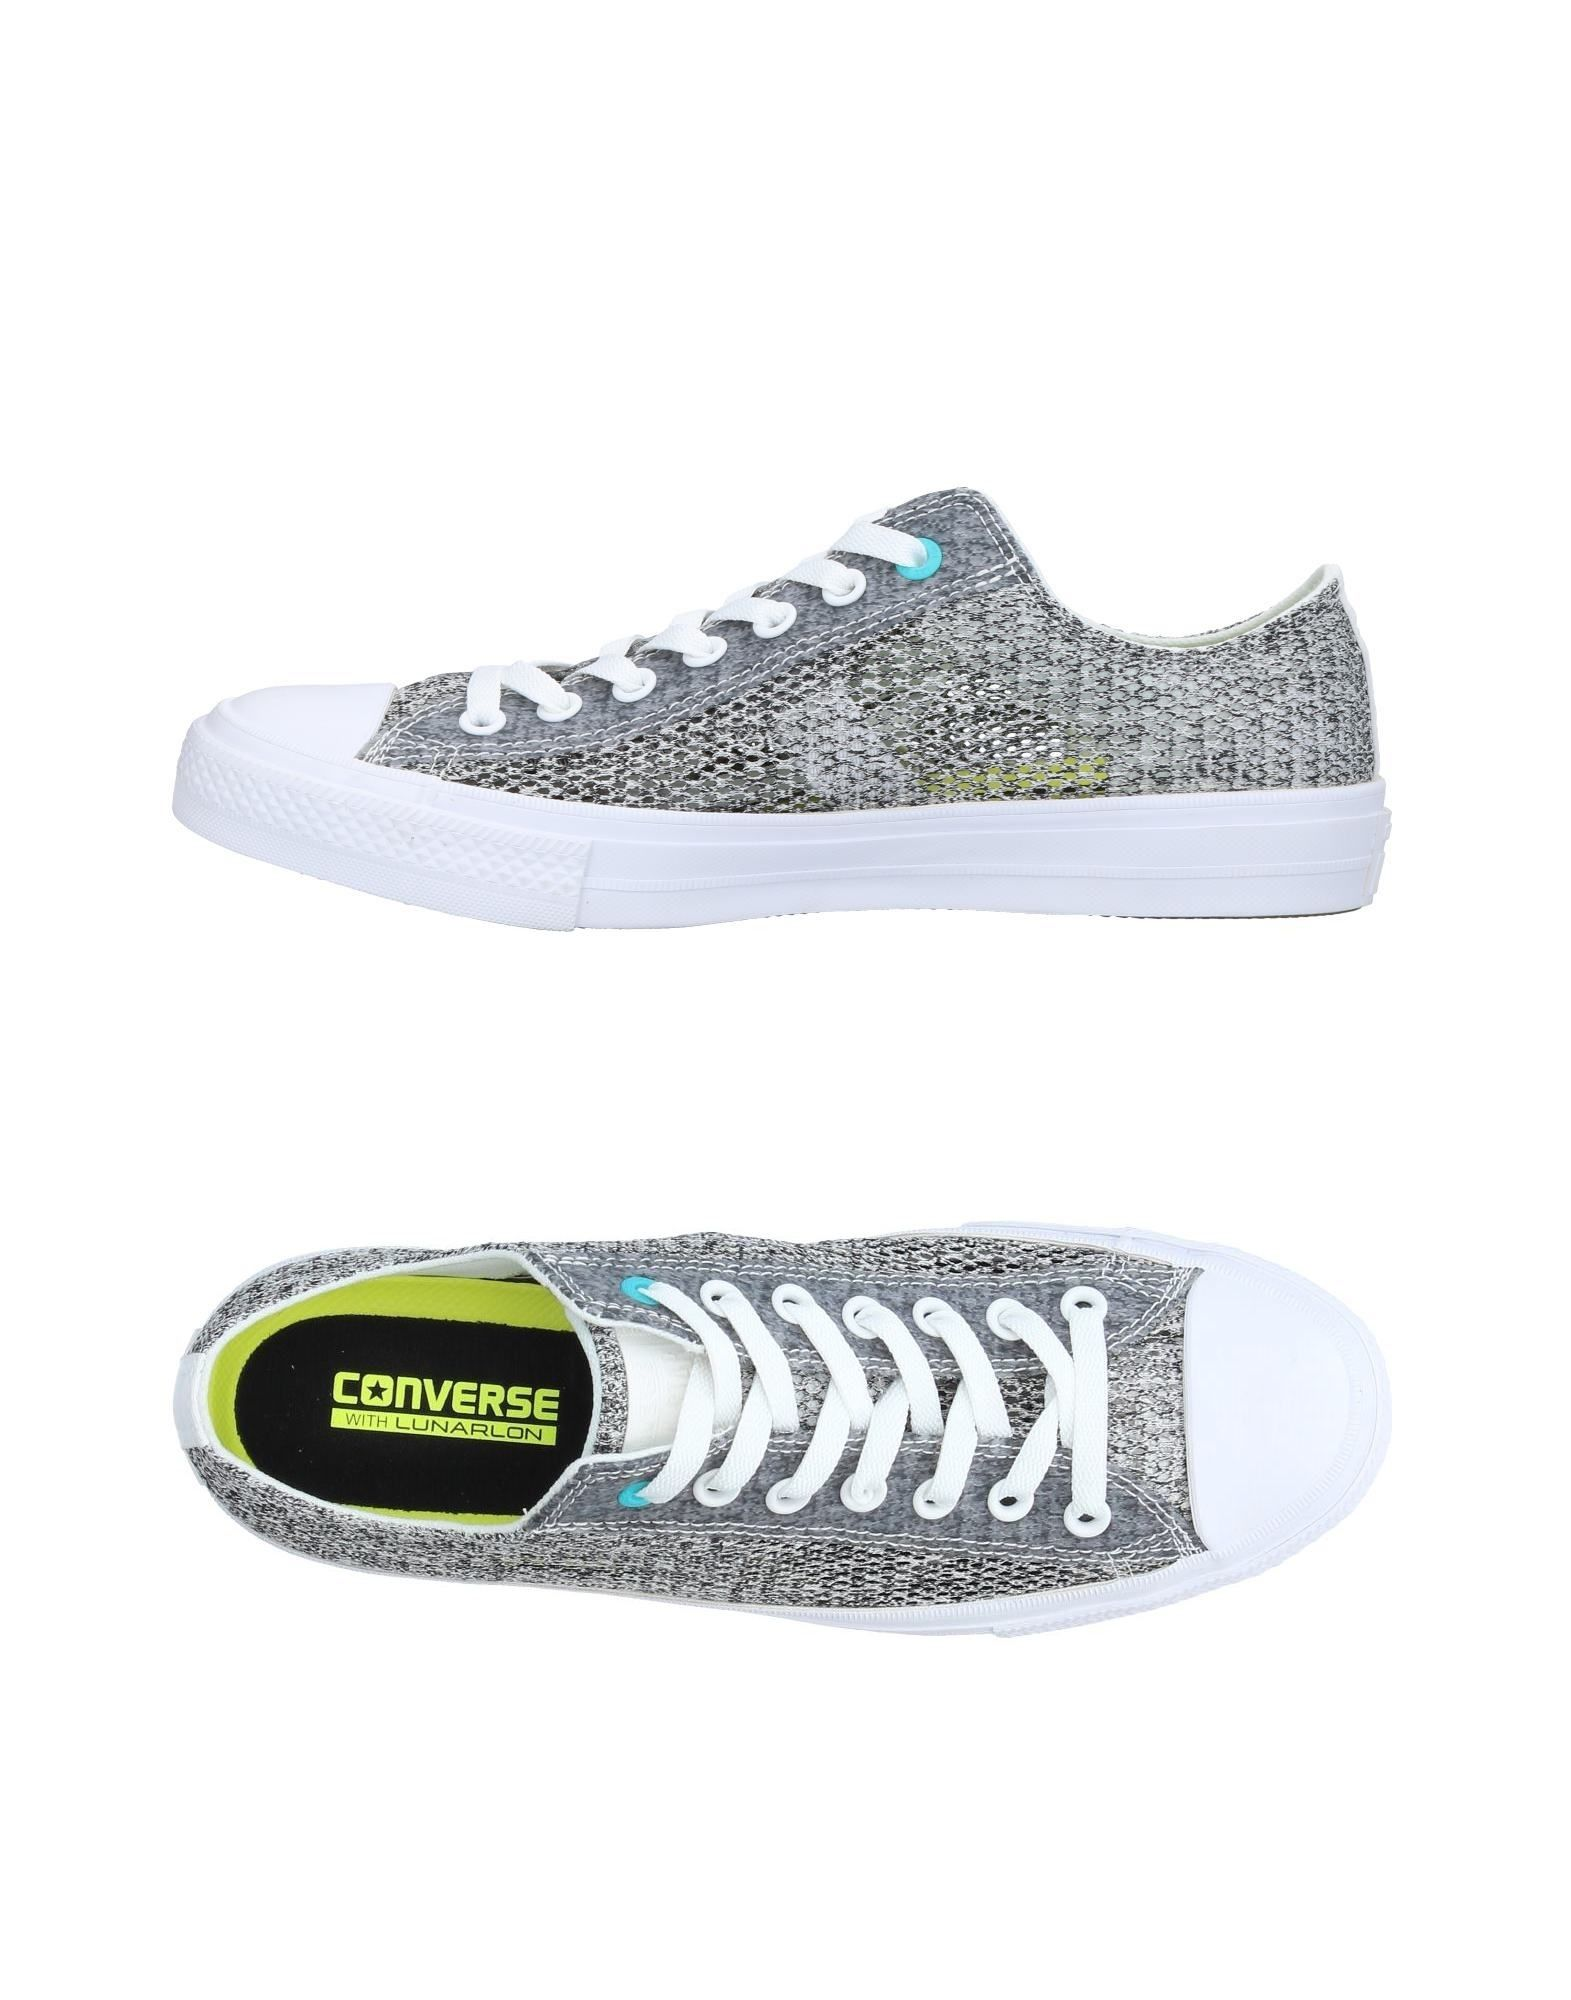 CONVERSE ALL STAR CHUCK TAYLOR II Низкие кеды и кроссовки слиперы chuck taylor all star cove converse